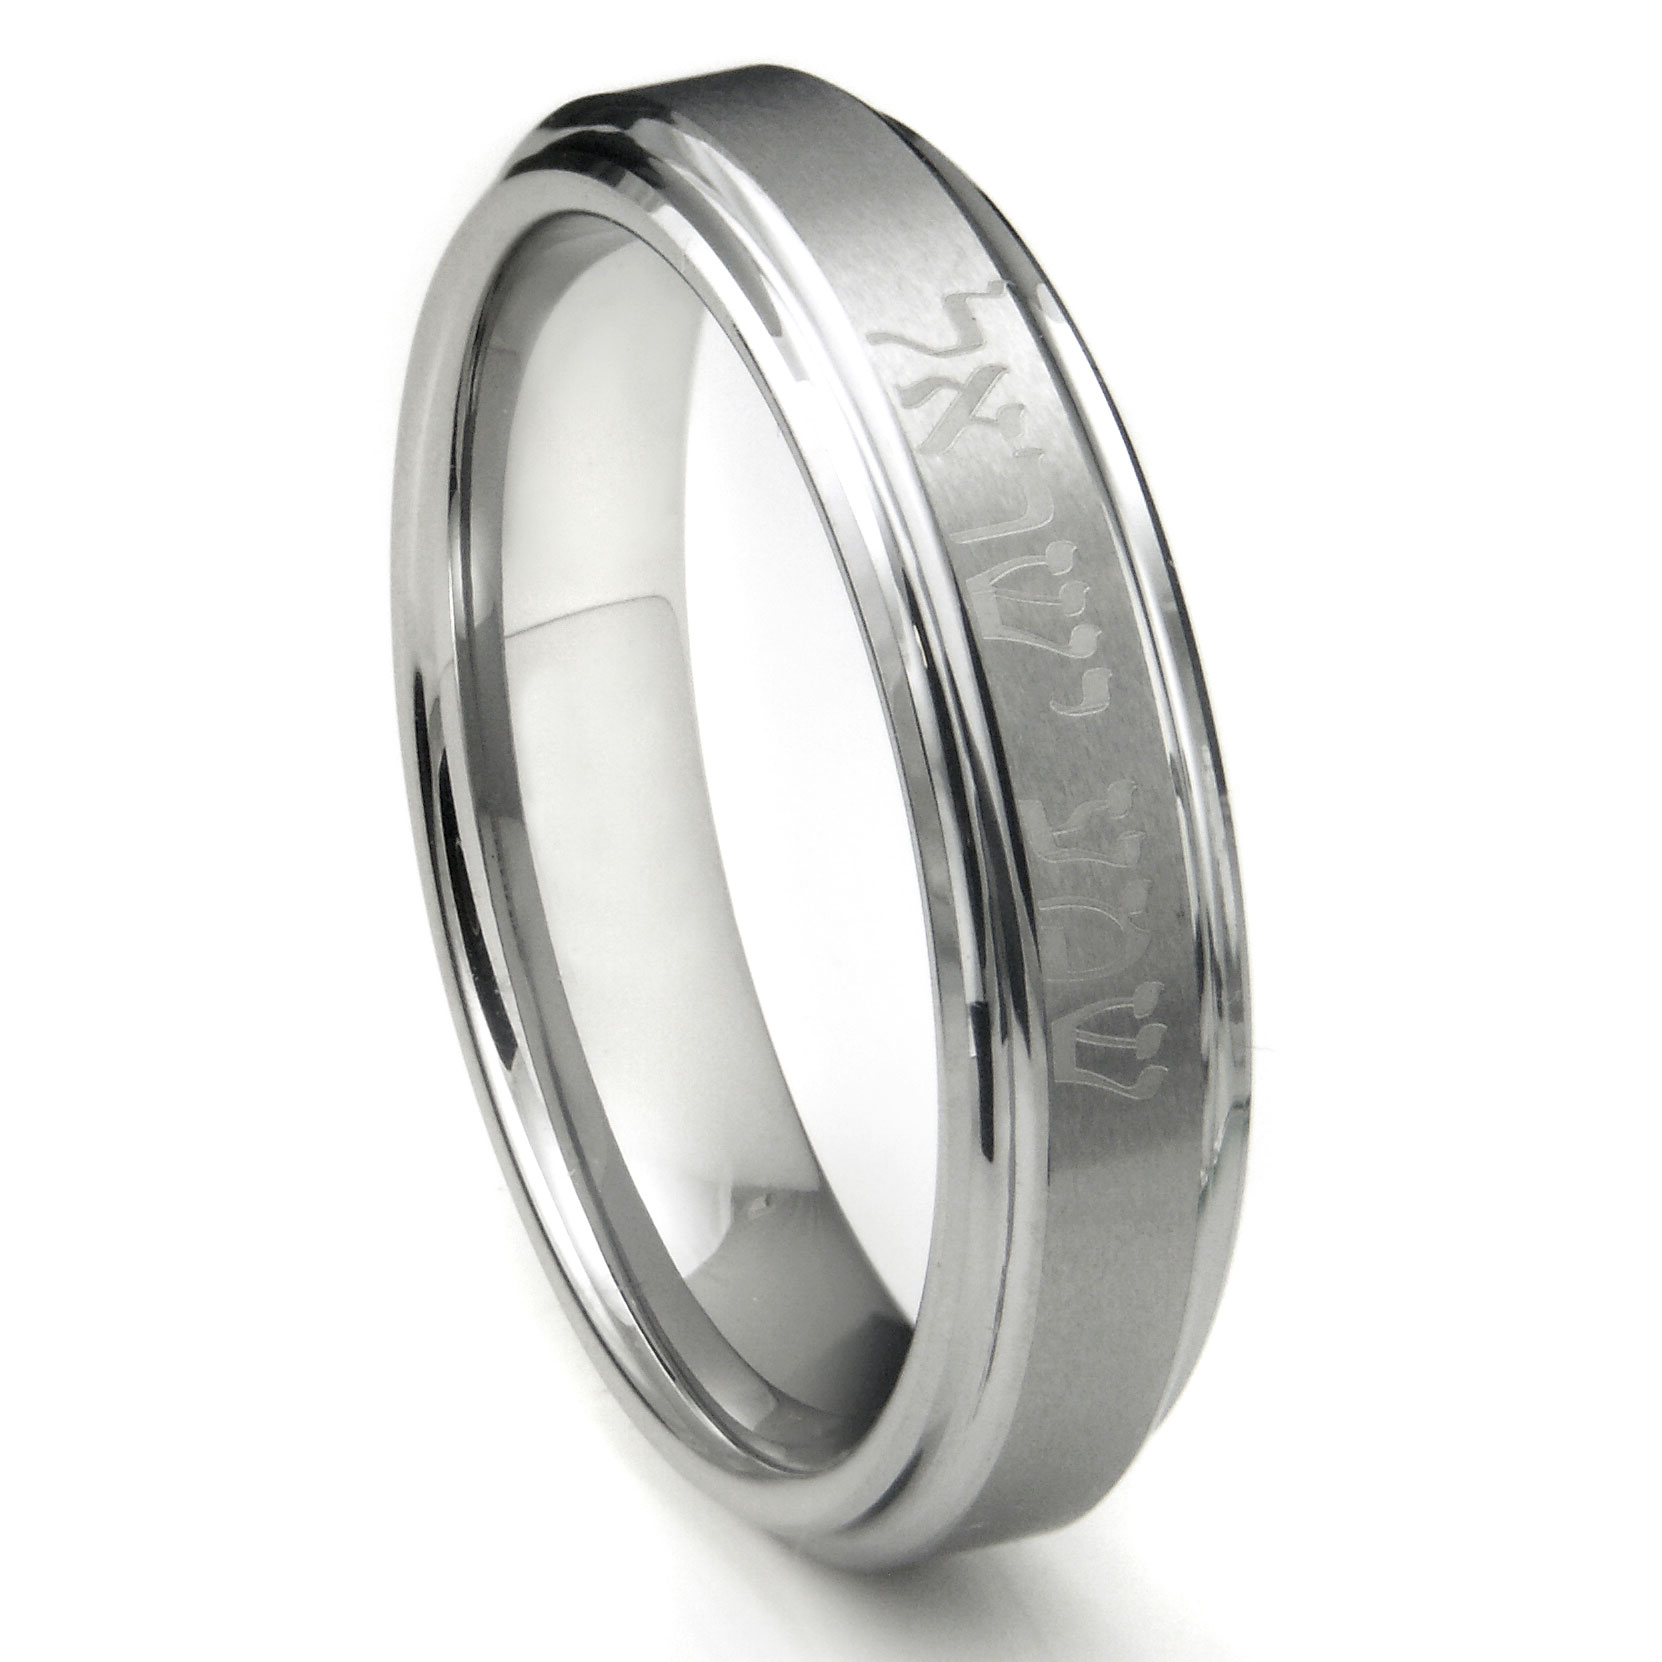 ring customized zoom laser w cobalt wedding engraved band rings designs ripple xf loading chrome